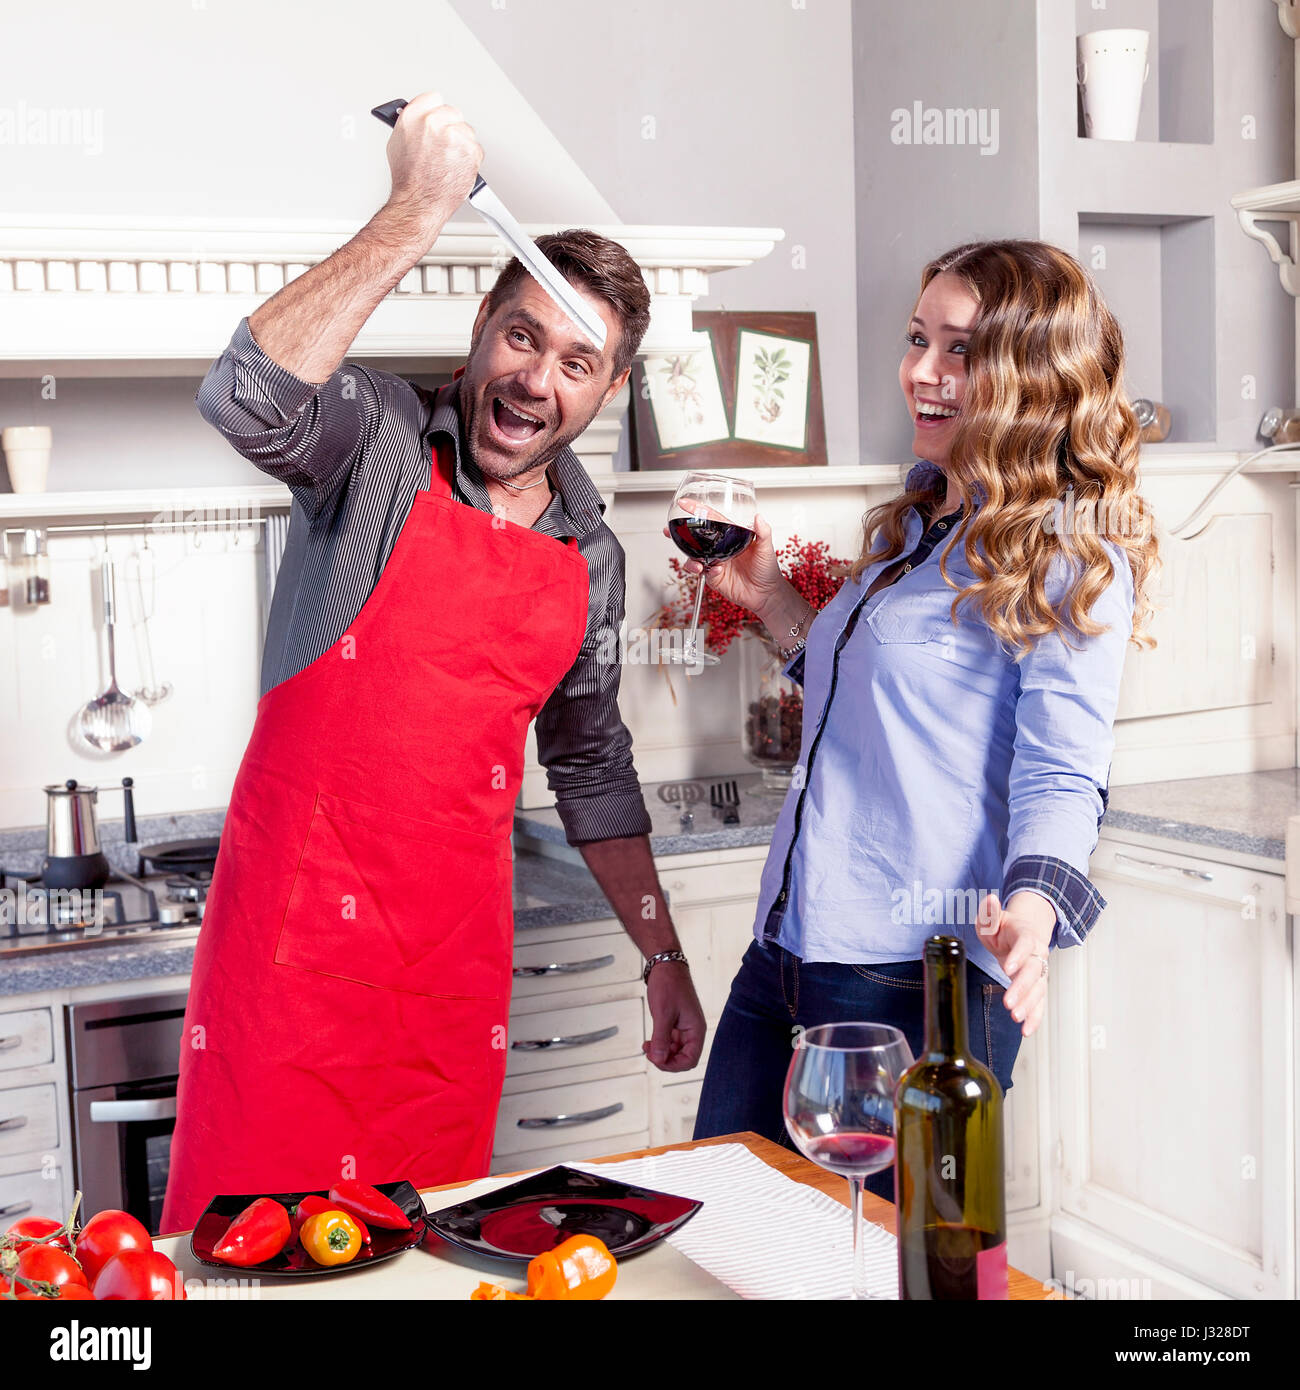 young husband jokes with his wife in the kitchen with a knife - Stock Image